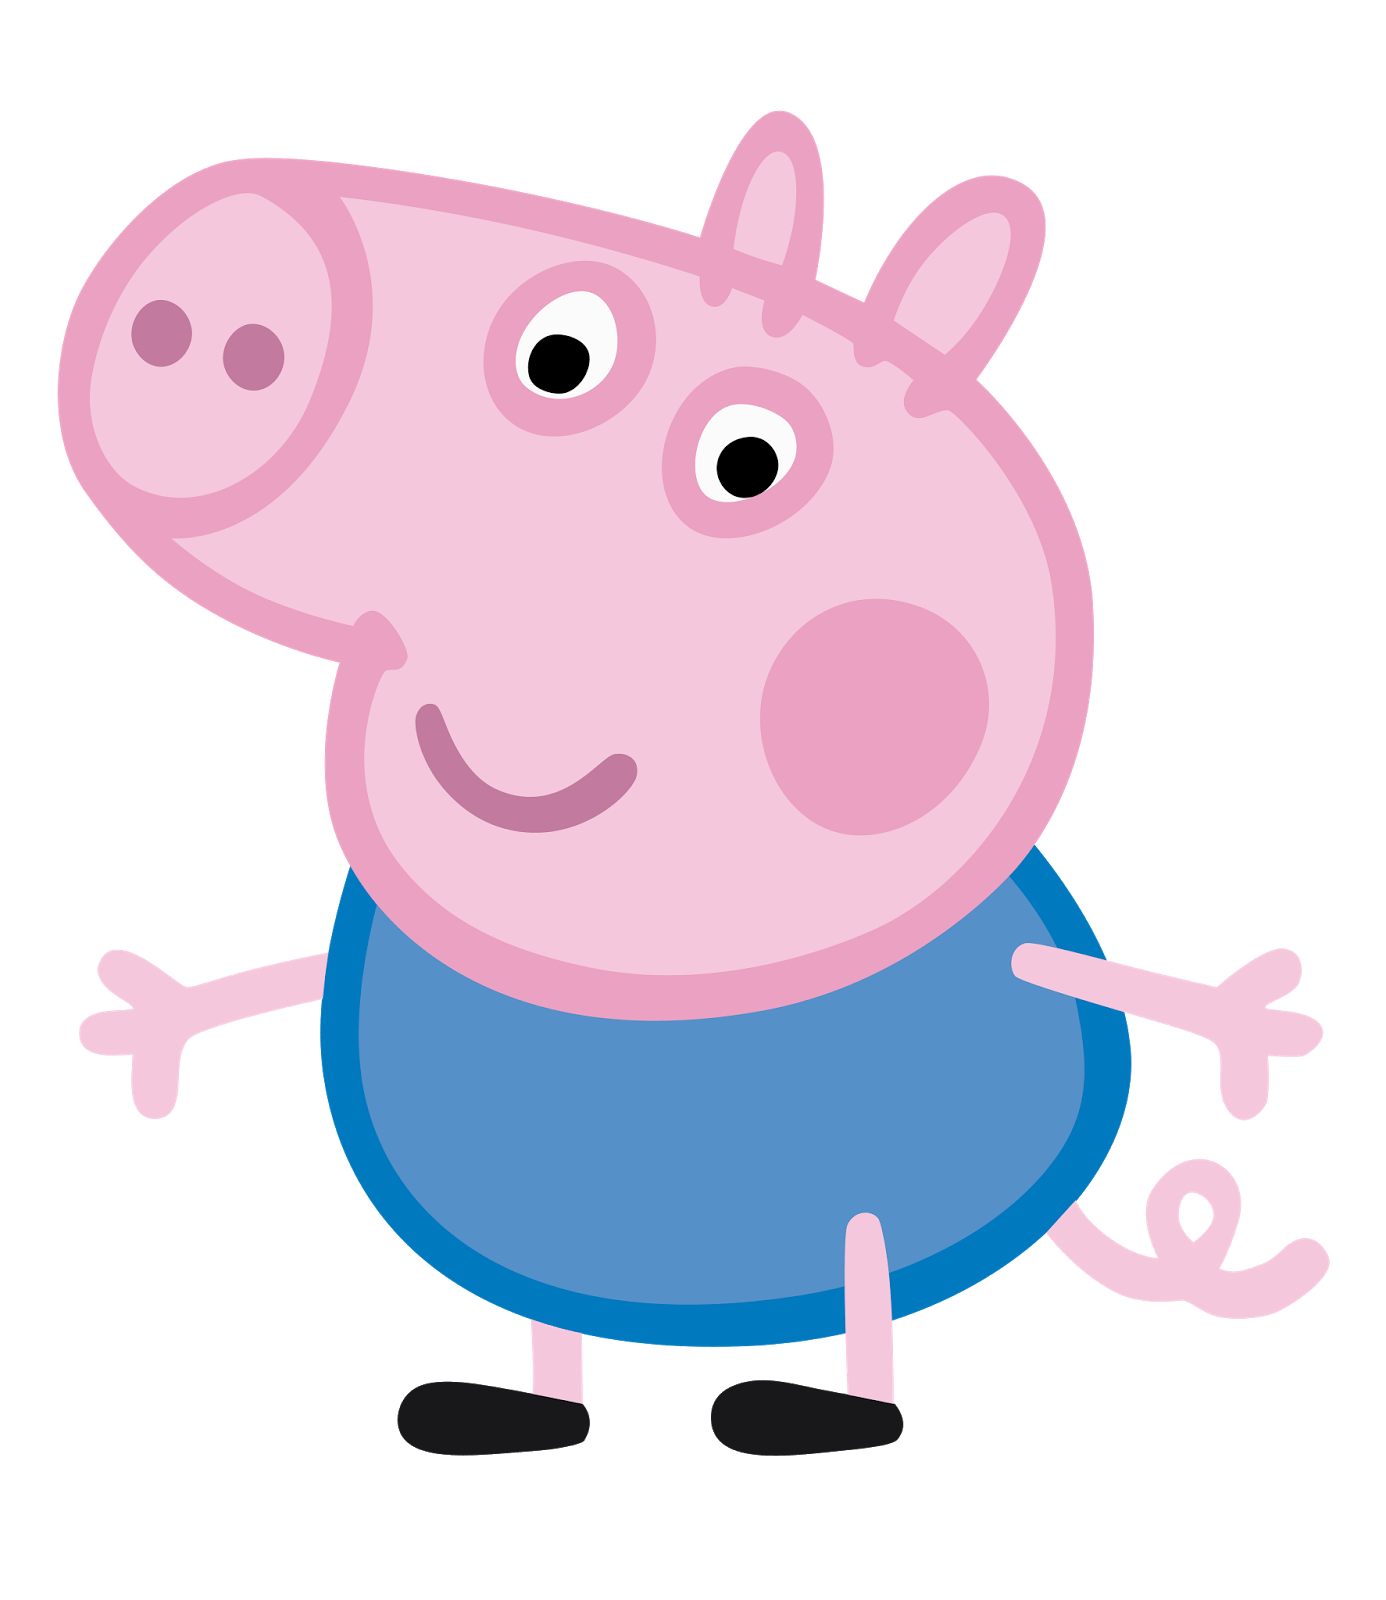 HD wallpapers peppa pig png images www.designiandroidmobilelove.ml